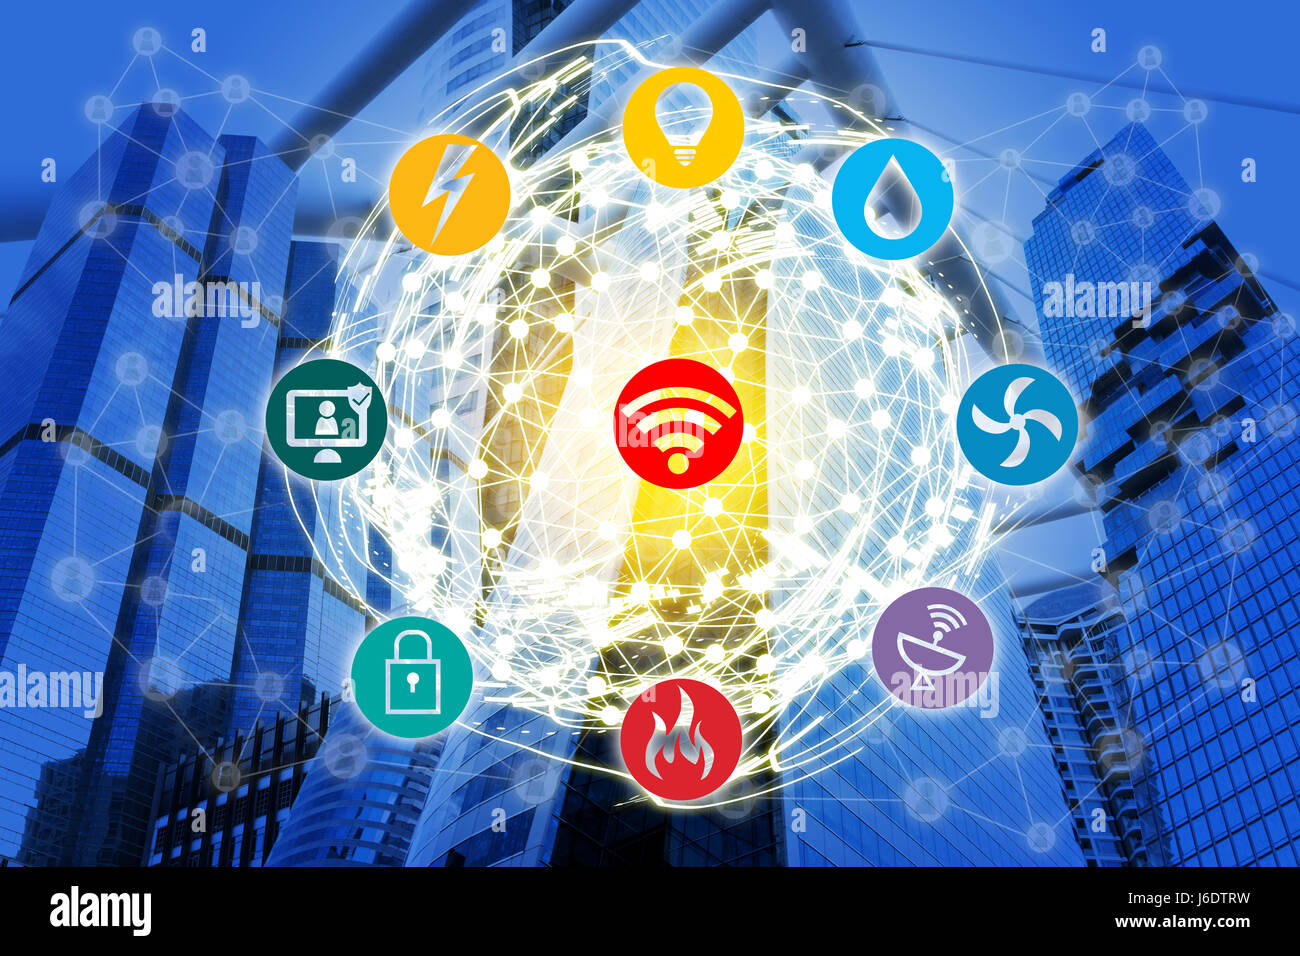 Smart Building and Internet of Things concept. Smart building management icons on office building and wireframe - Stock Image